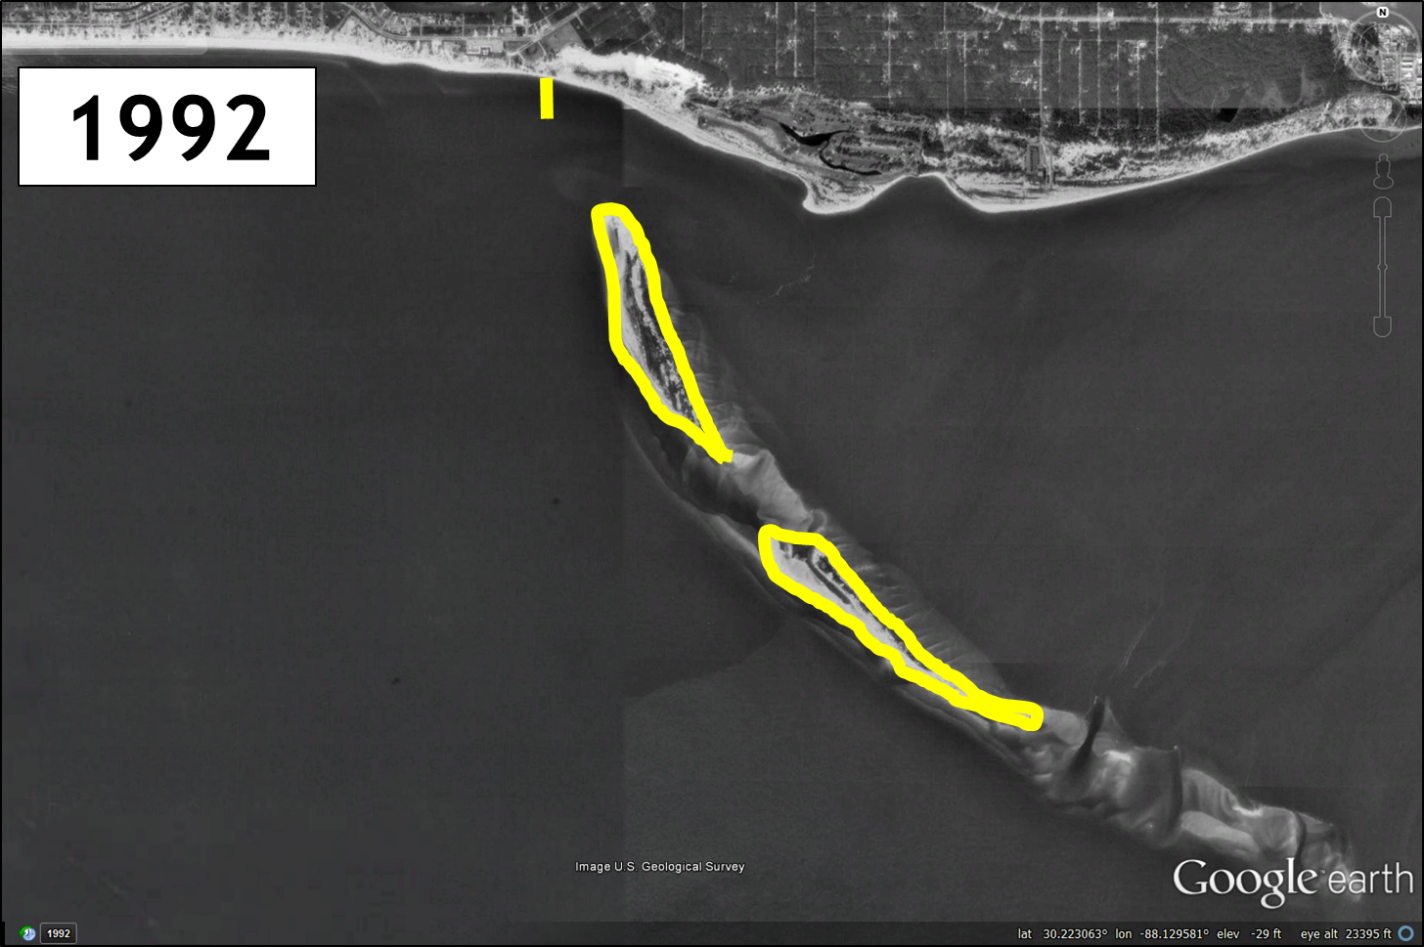 Pelican Island on Dauphin Island, Alabama, in 1992. Yellow outline is the main land masses in 1992 and the northern yellow mark is the location of the Dauphin Island Public Pier. Imagery from Google Earth.